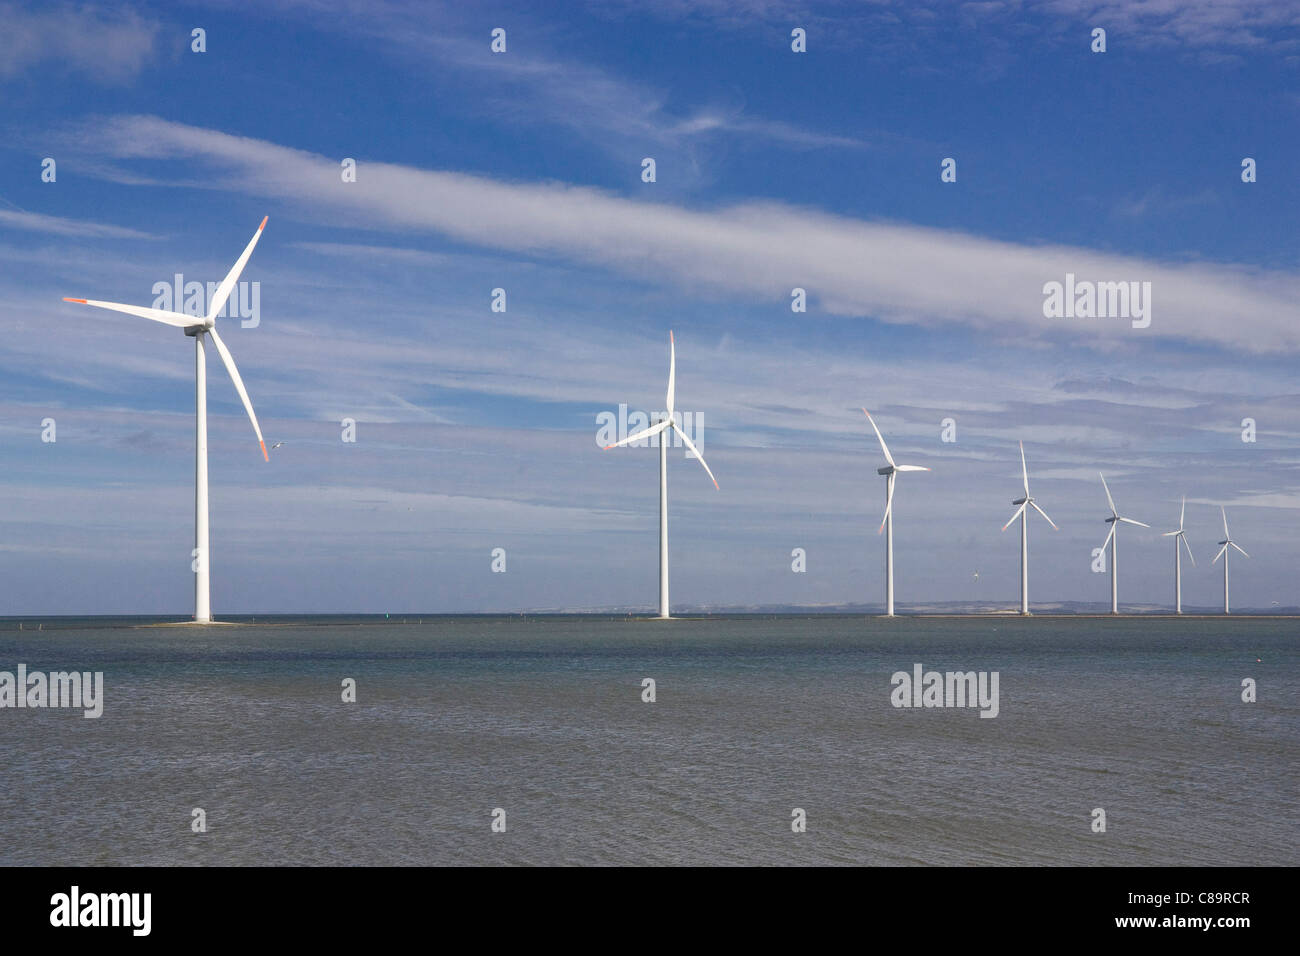 Denmark, Harbore, View of wind turbines at coast - Stock Image